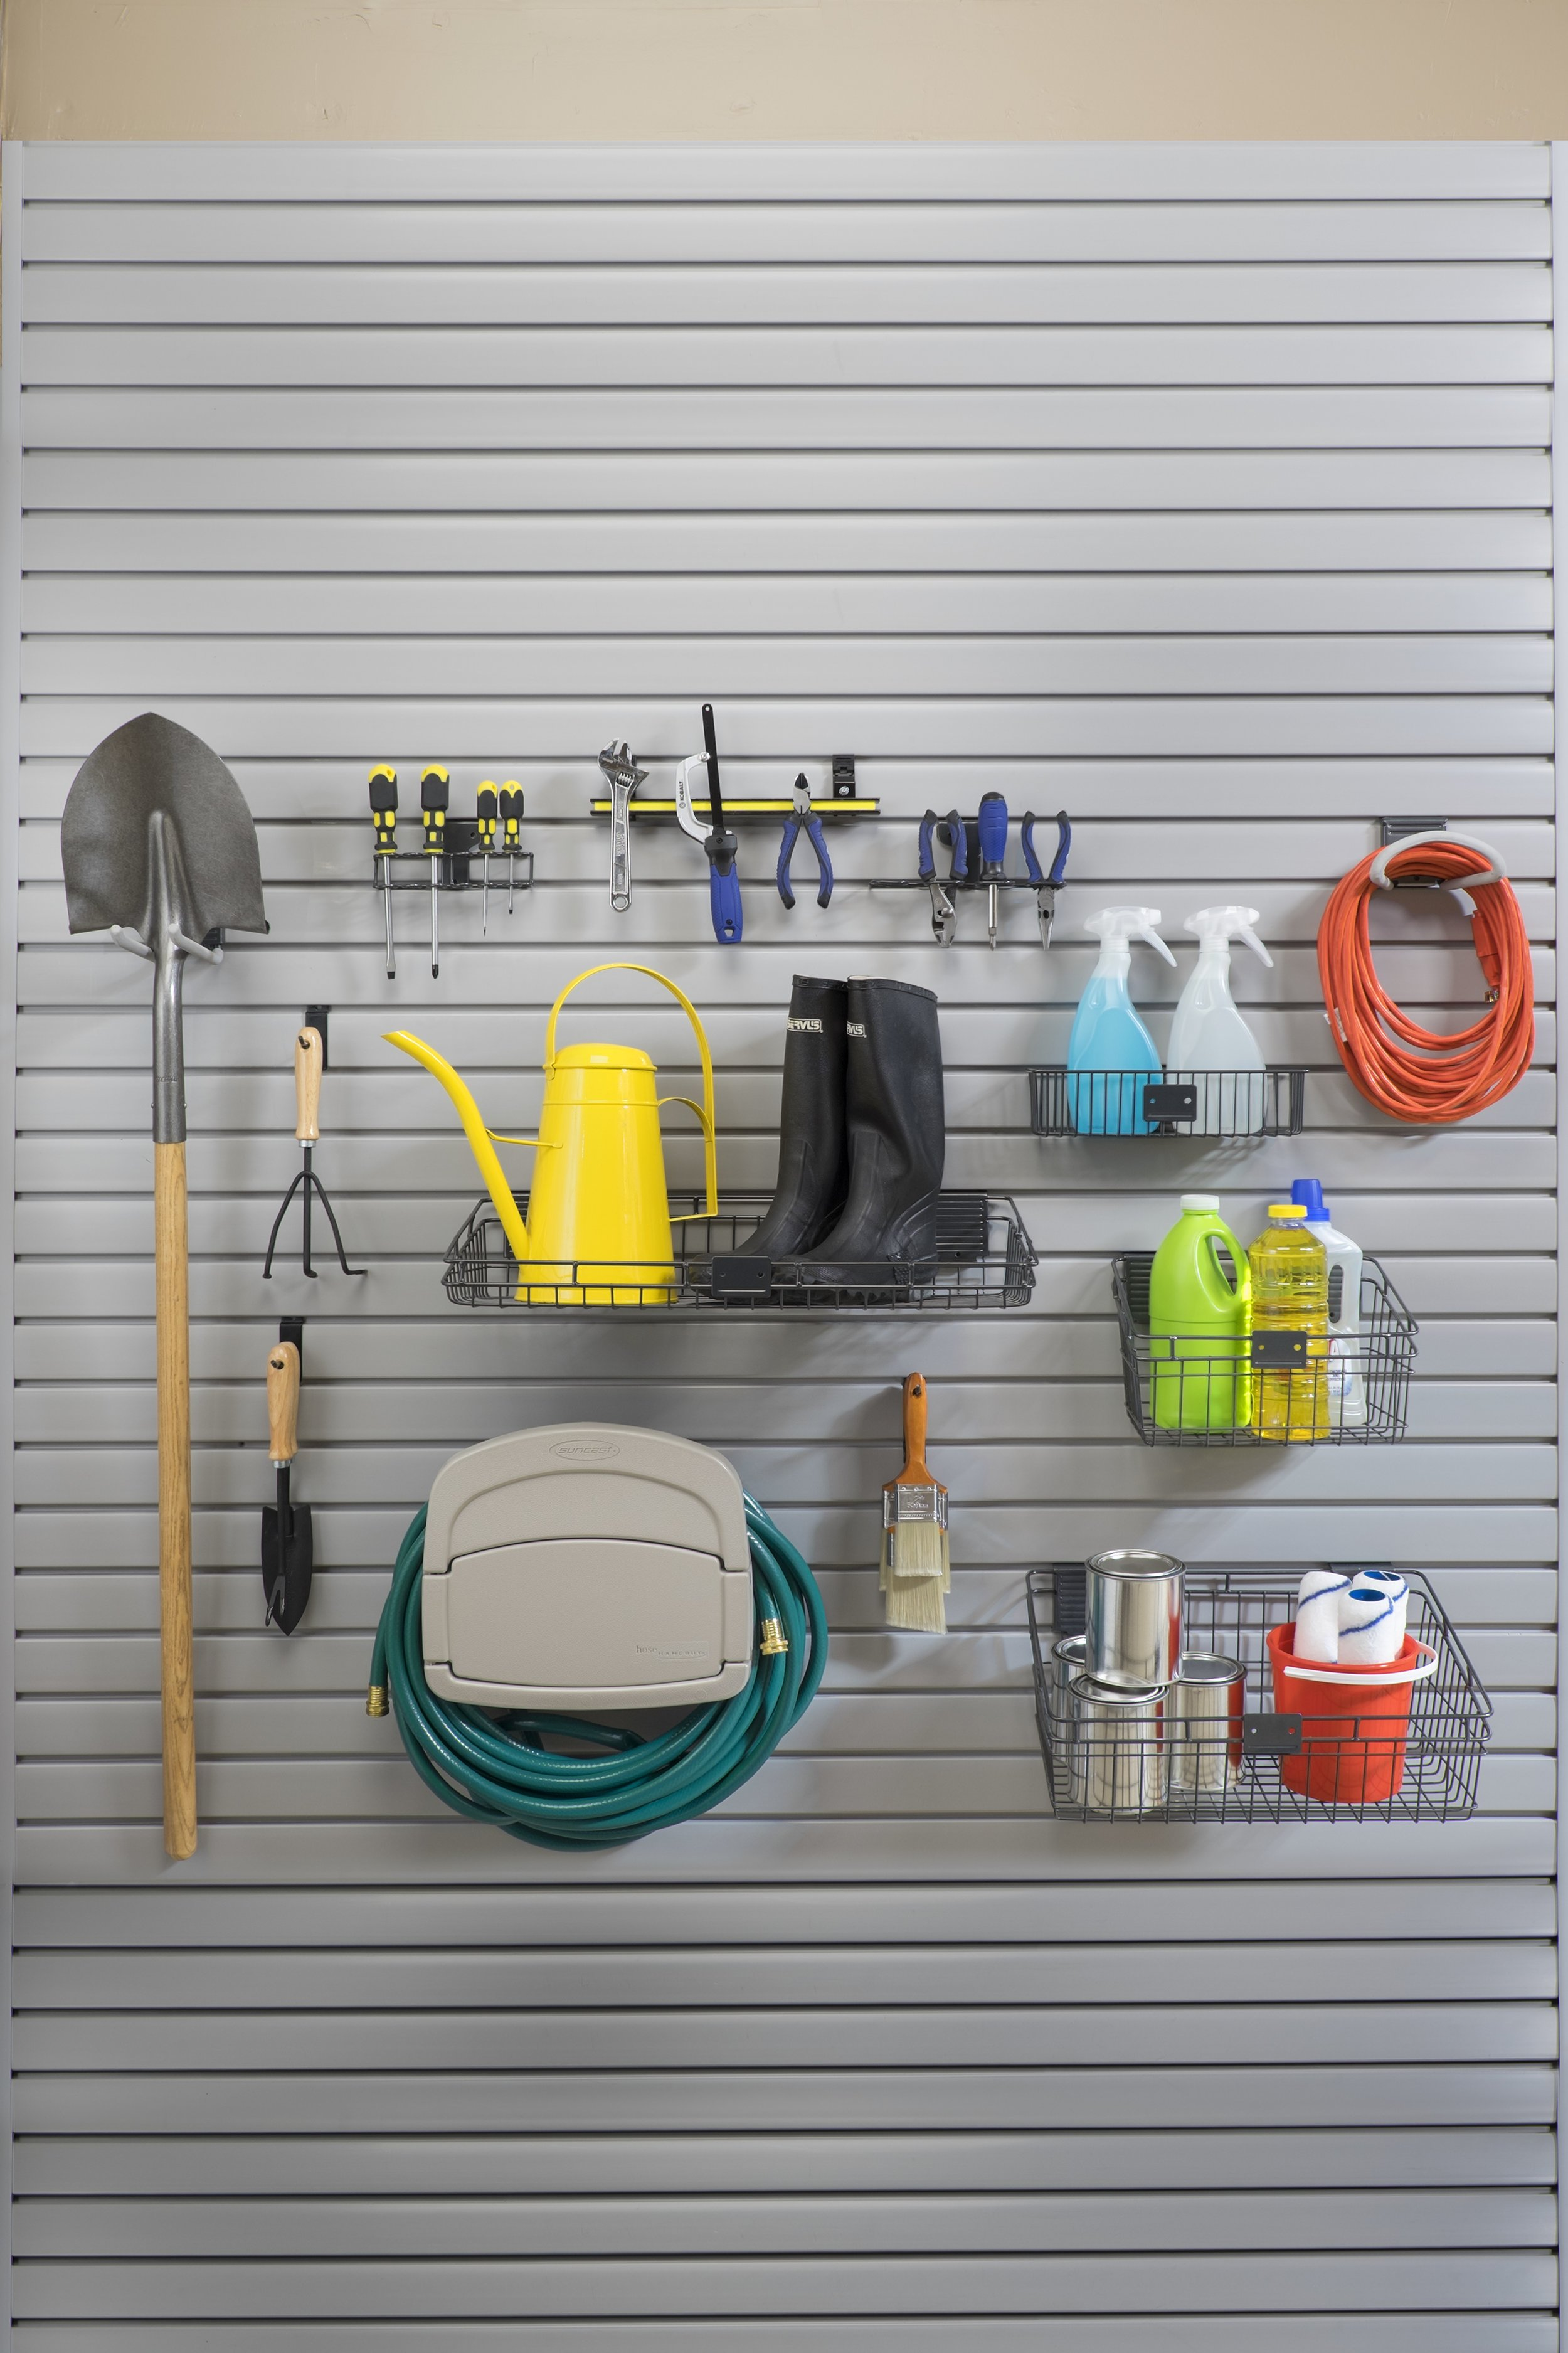 This garage slatwall by Closets of Tulsa creates clean, customizable, easy-access tool storage to keep you organized.  Call Closets of Tulsa  now for your FREE consultation and 3-D garage design:  918.609.0214